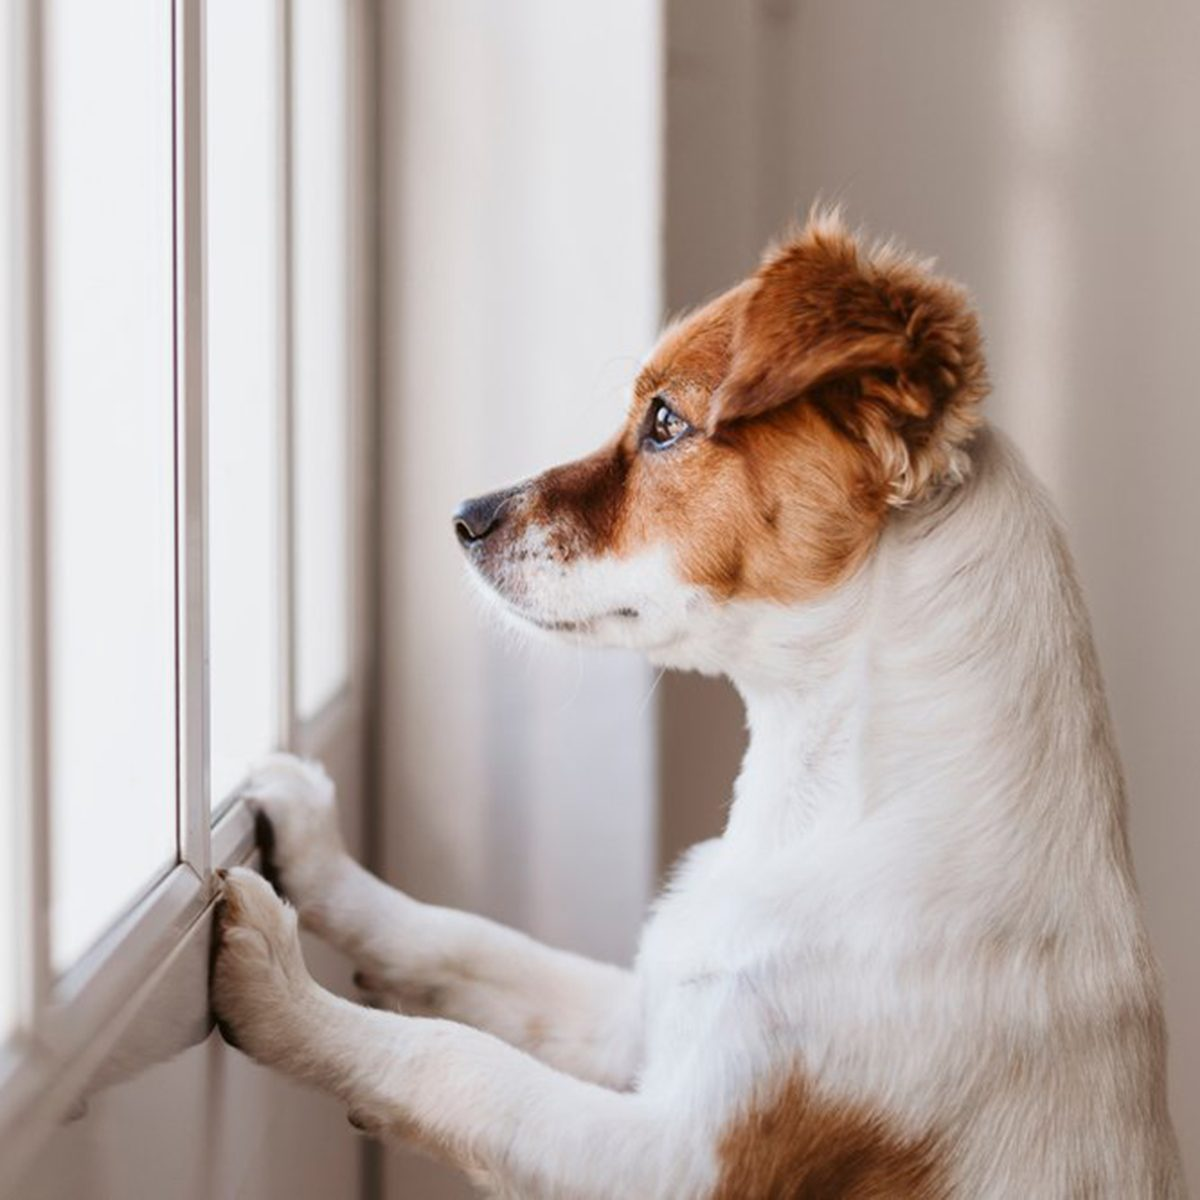 Puppy watching excitedly through a window